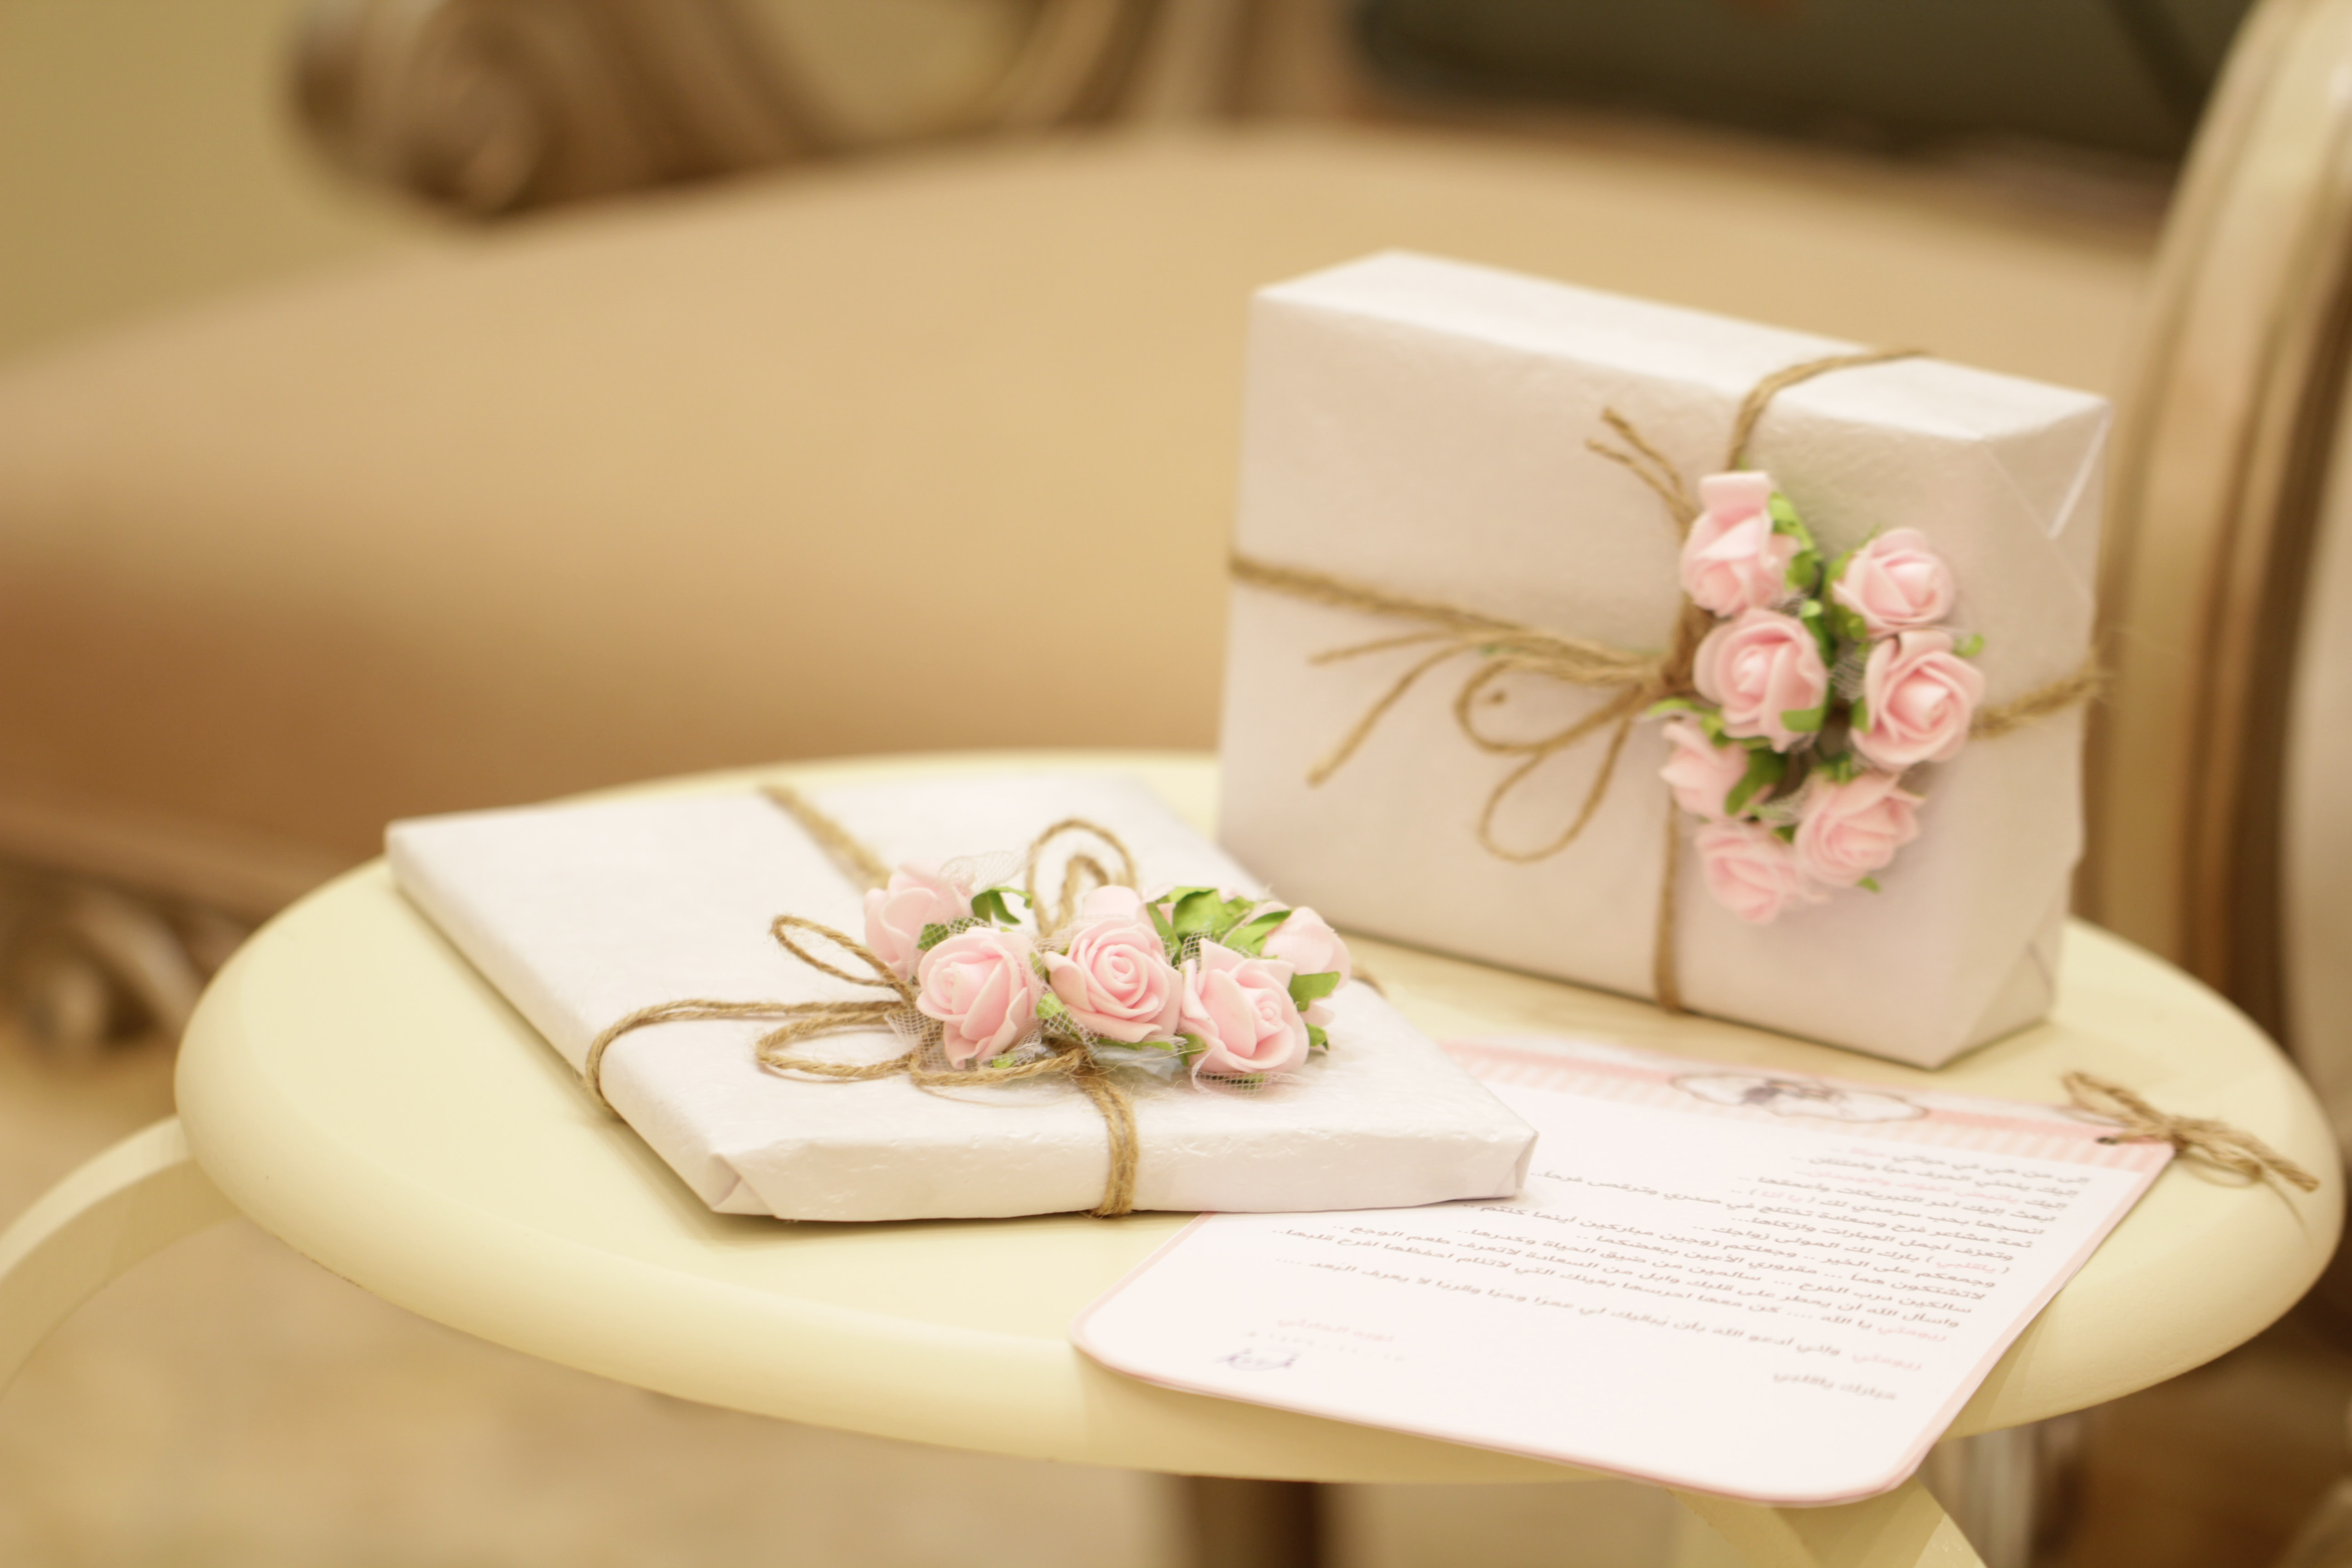 A pair of wedding gifts wrapped in paper and tied with string with tiny pink roses.